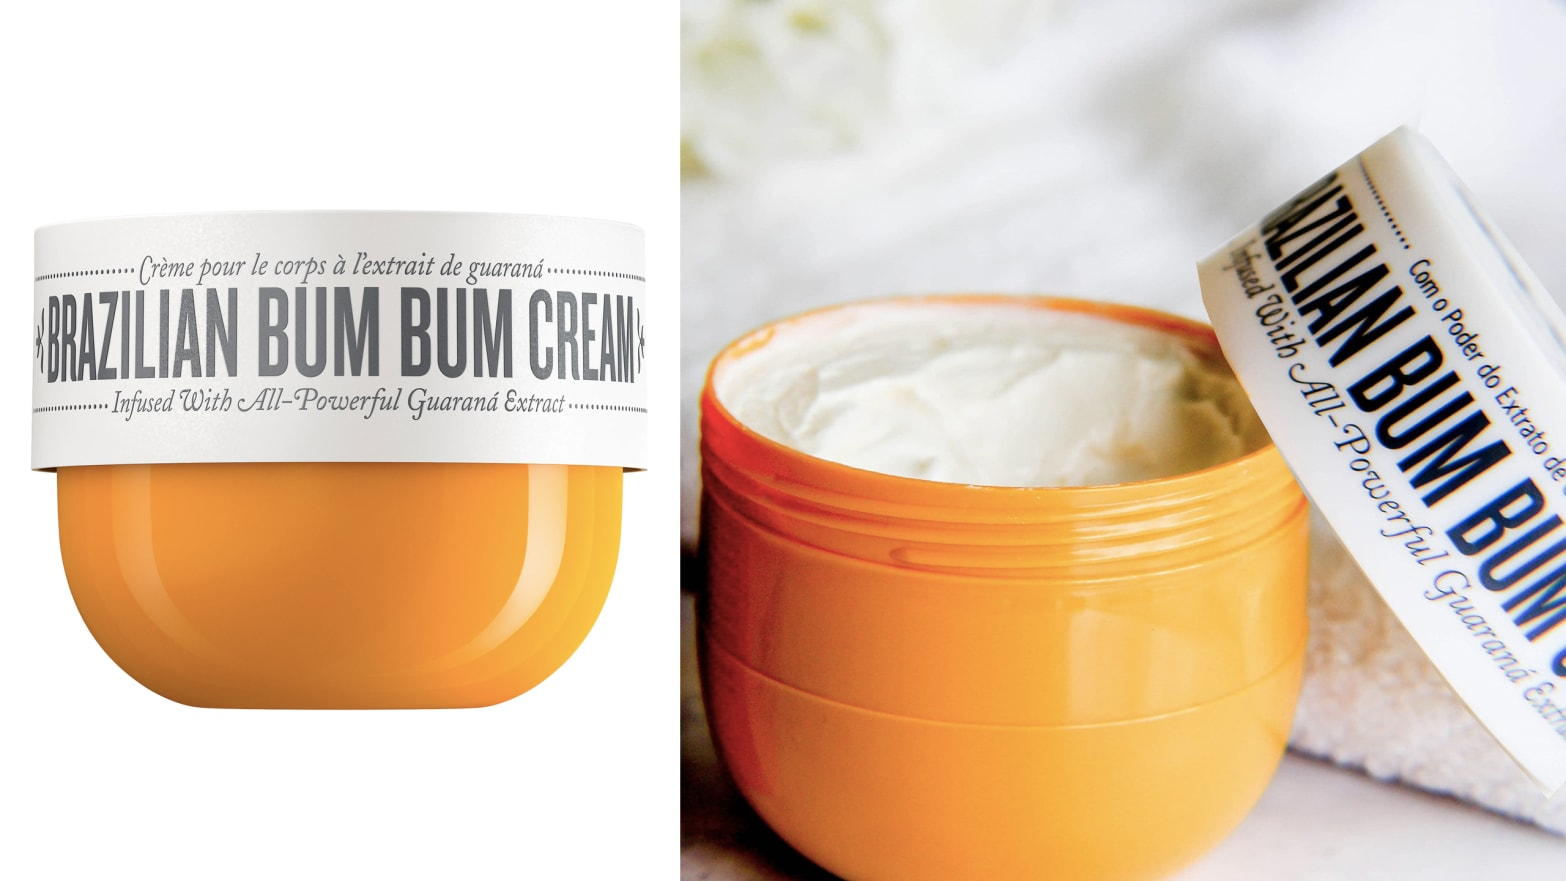 Brazilian Bum Bum Cream Is Body Lotion on Steroids